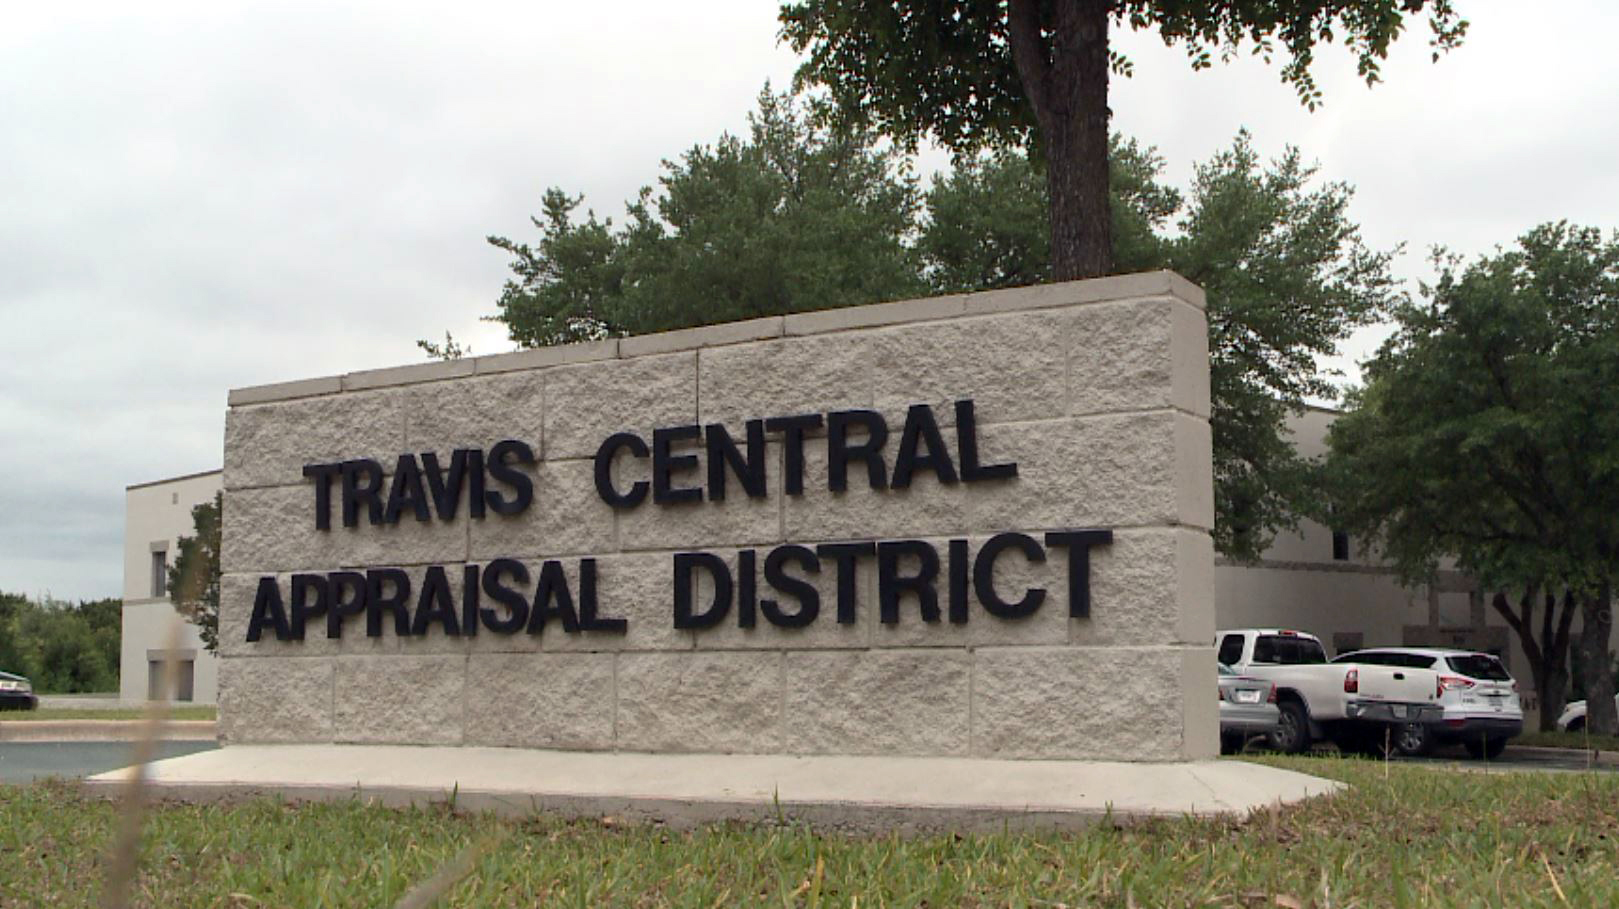 travis central appraisal district_478905